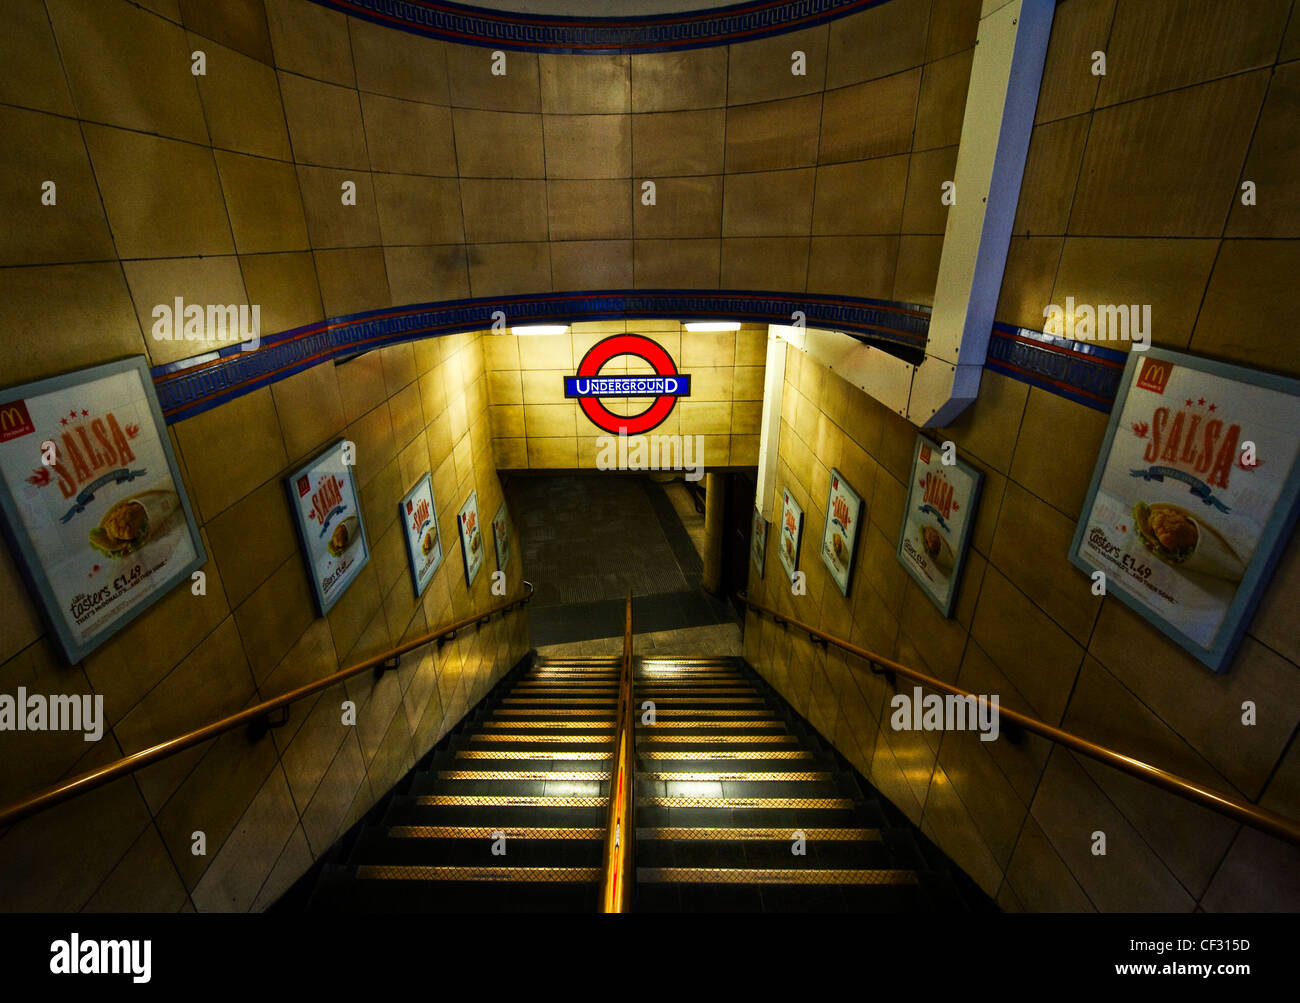 Steps leading down to a London Underground station. - Stock Image